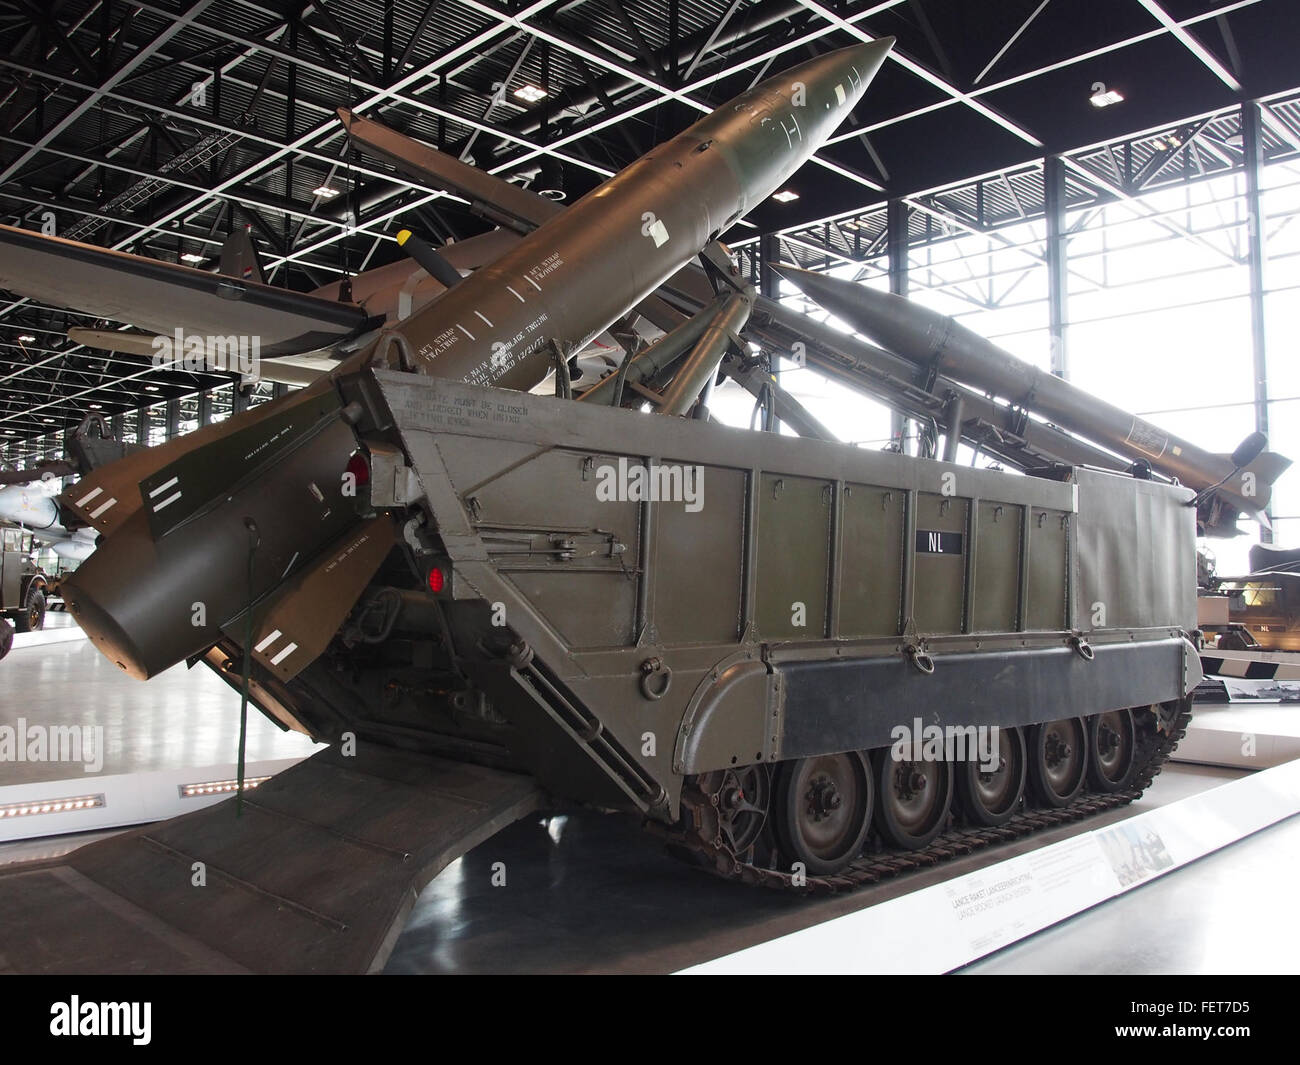 MGM-52 Lance rocket on M752 self-propelled launcher pic4 - Stock Image